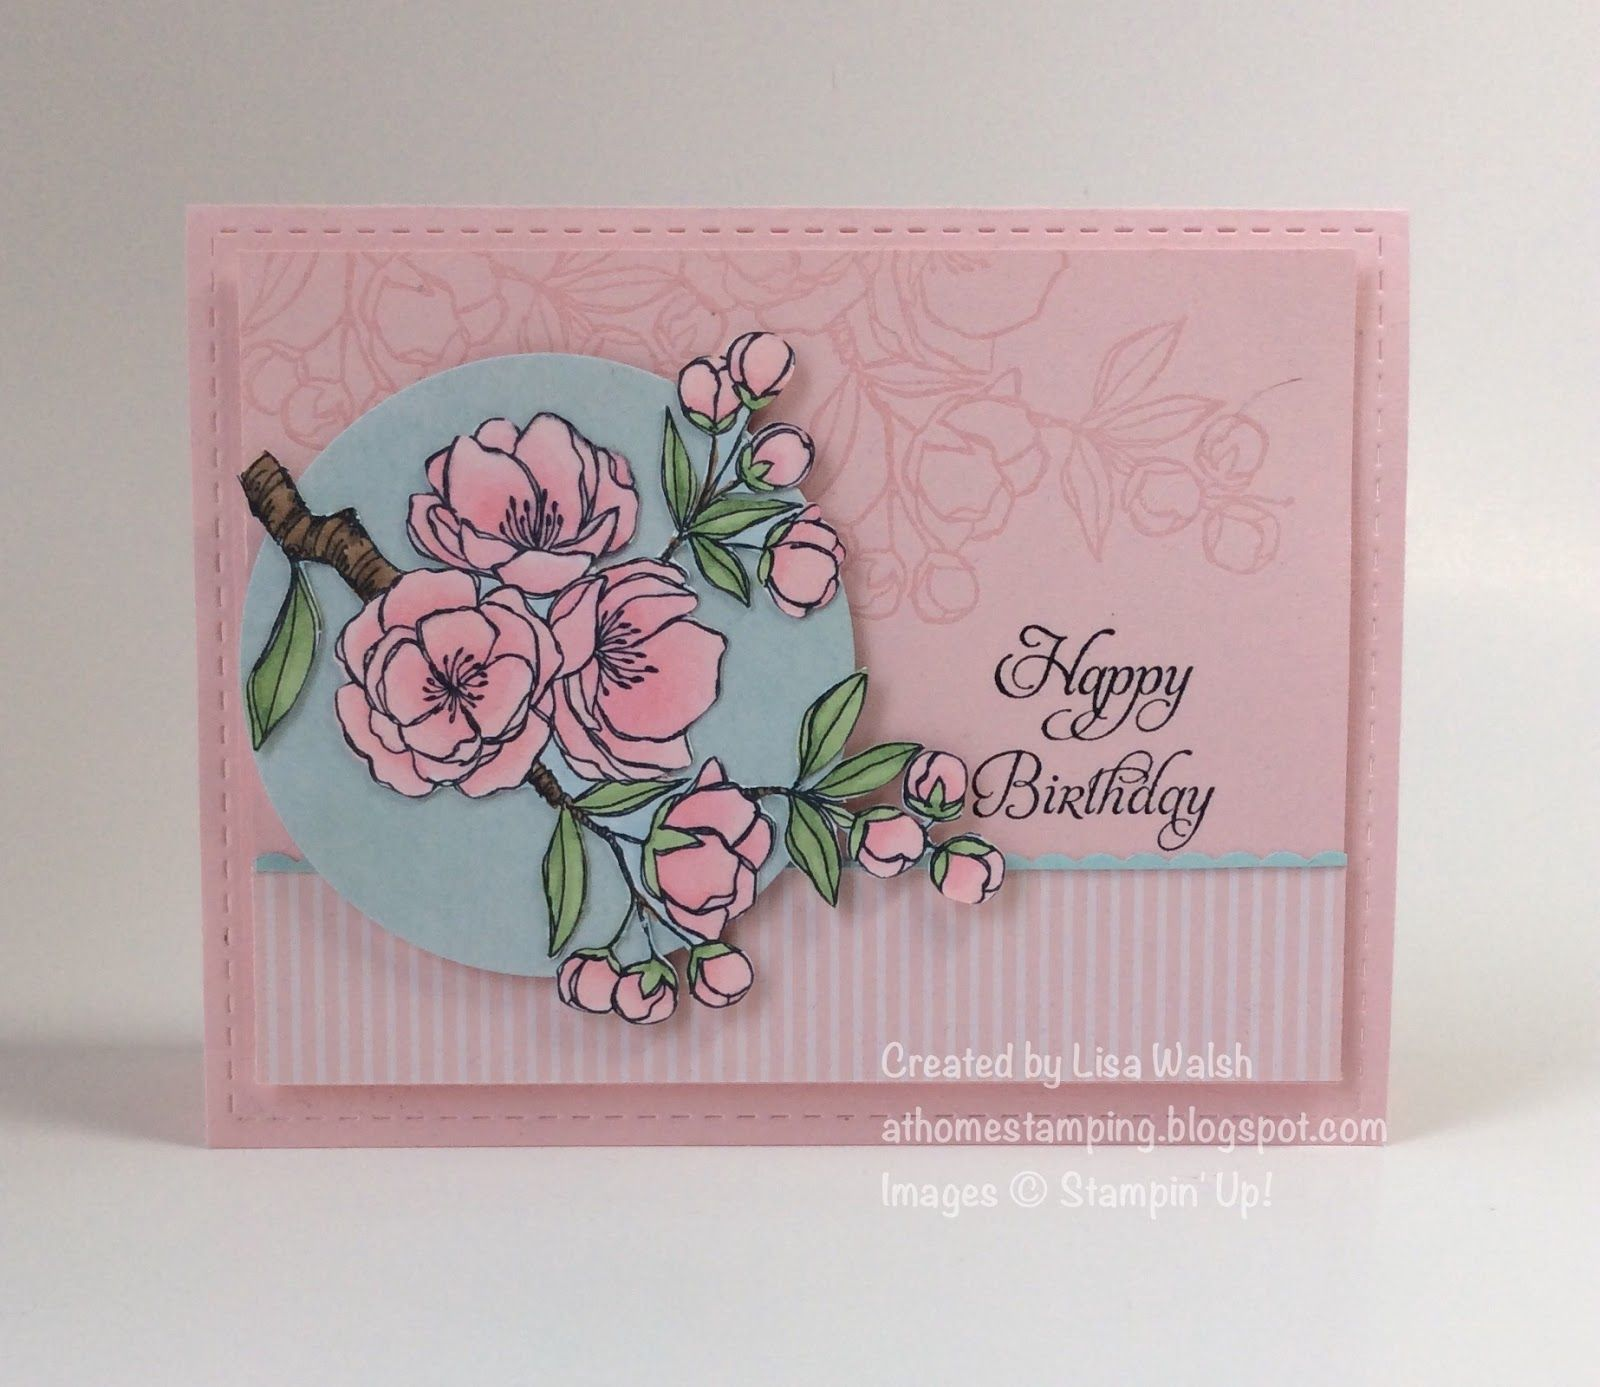 At Home Stamping: Indescribable Gift for the Paper Players